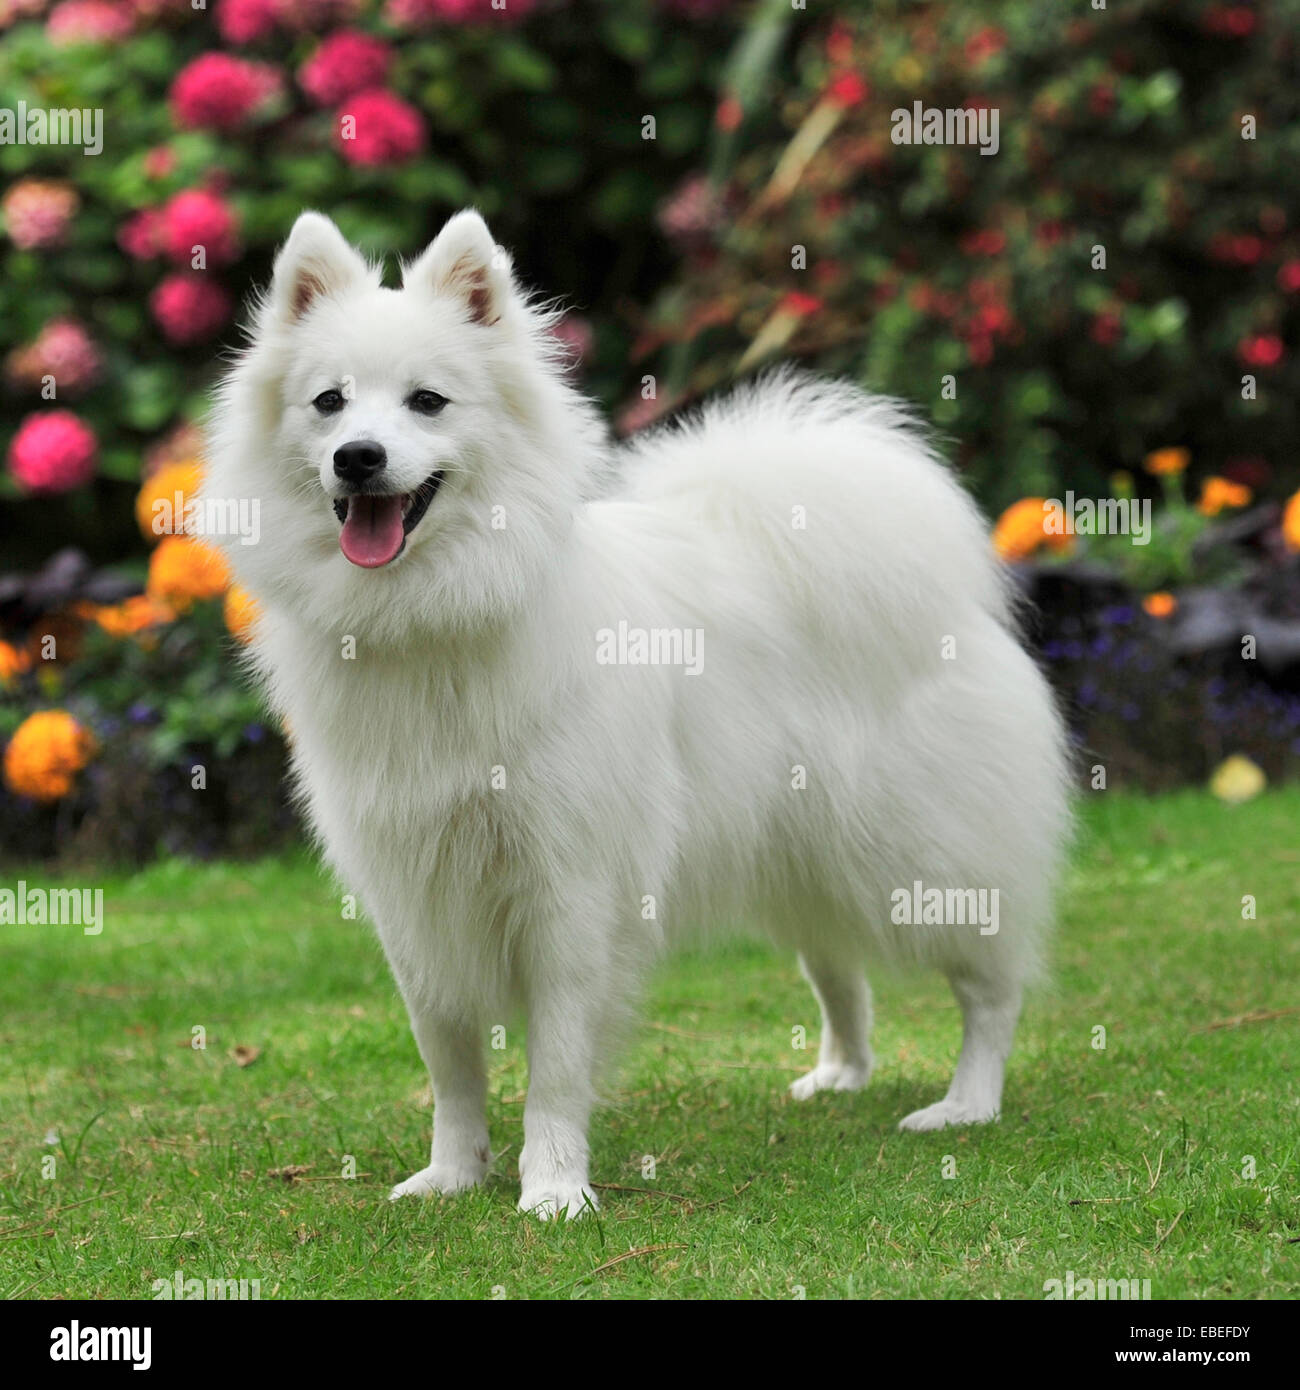 Japanese spitz dog - Stock Image